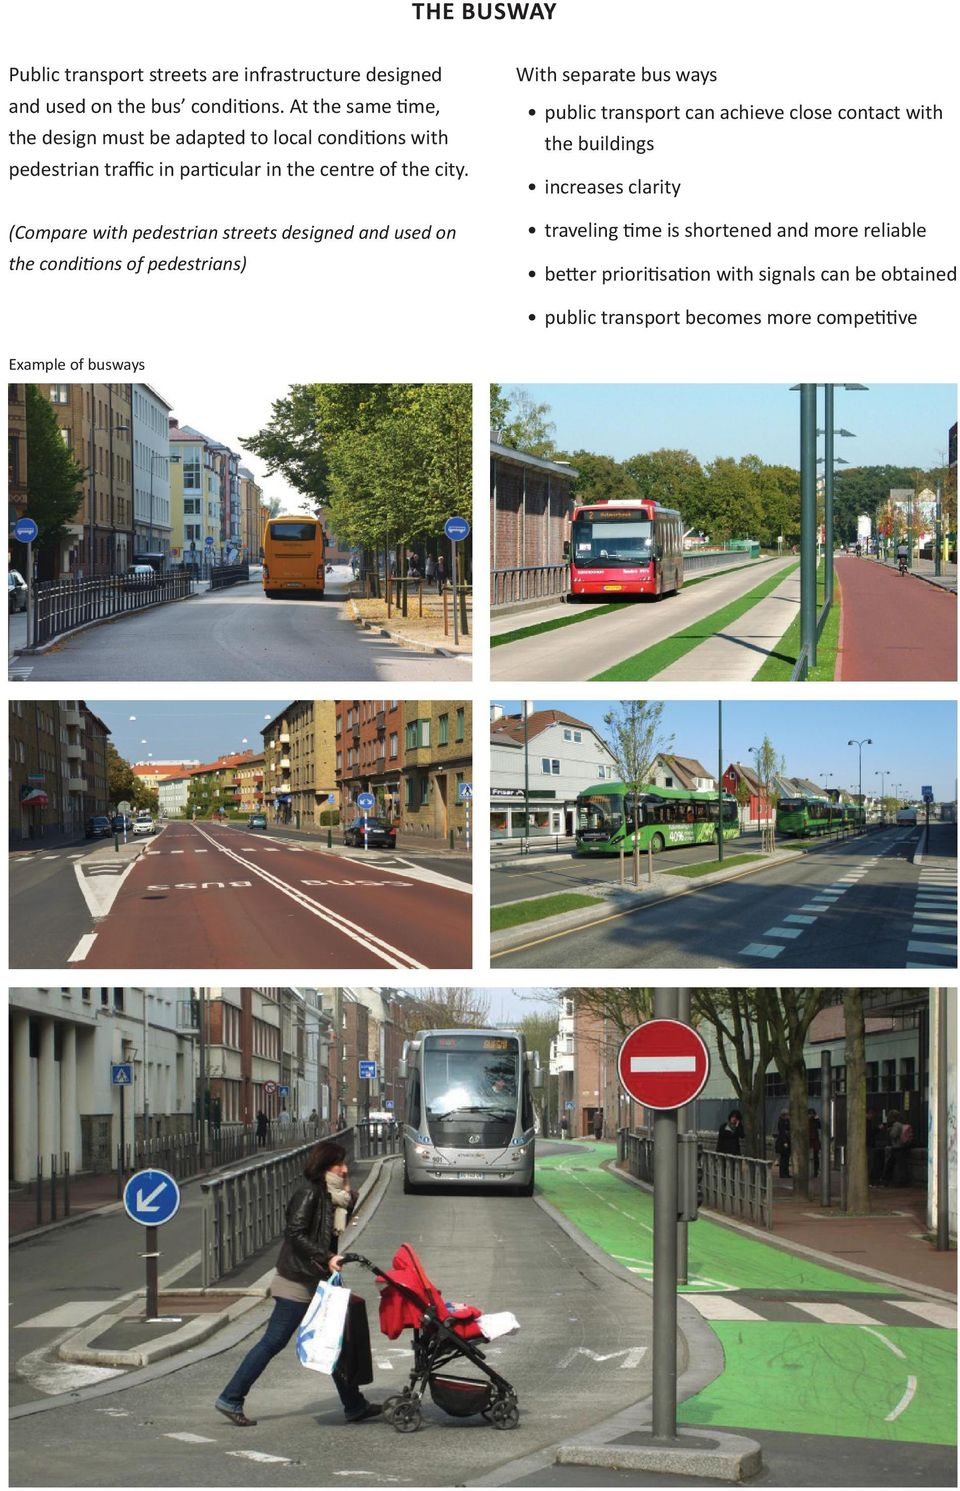 (Compare with pedestrian streets designed and used on the conditions of pedestrians) With separate bus ways public transport can achieve close